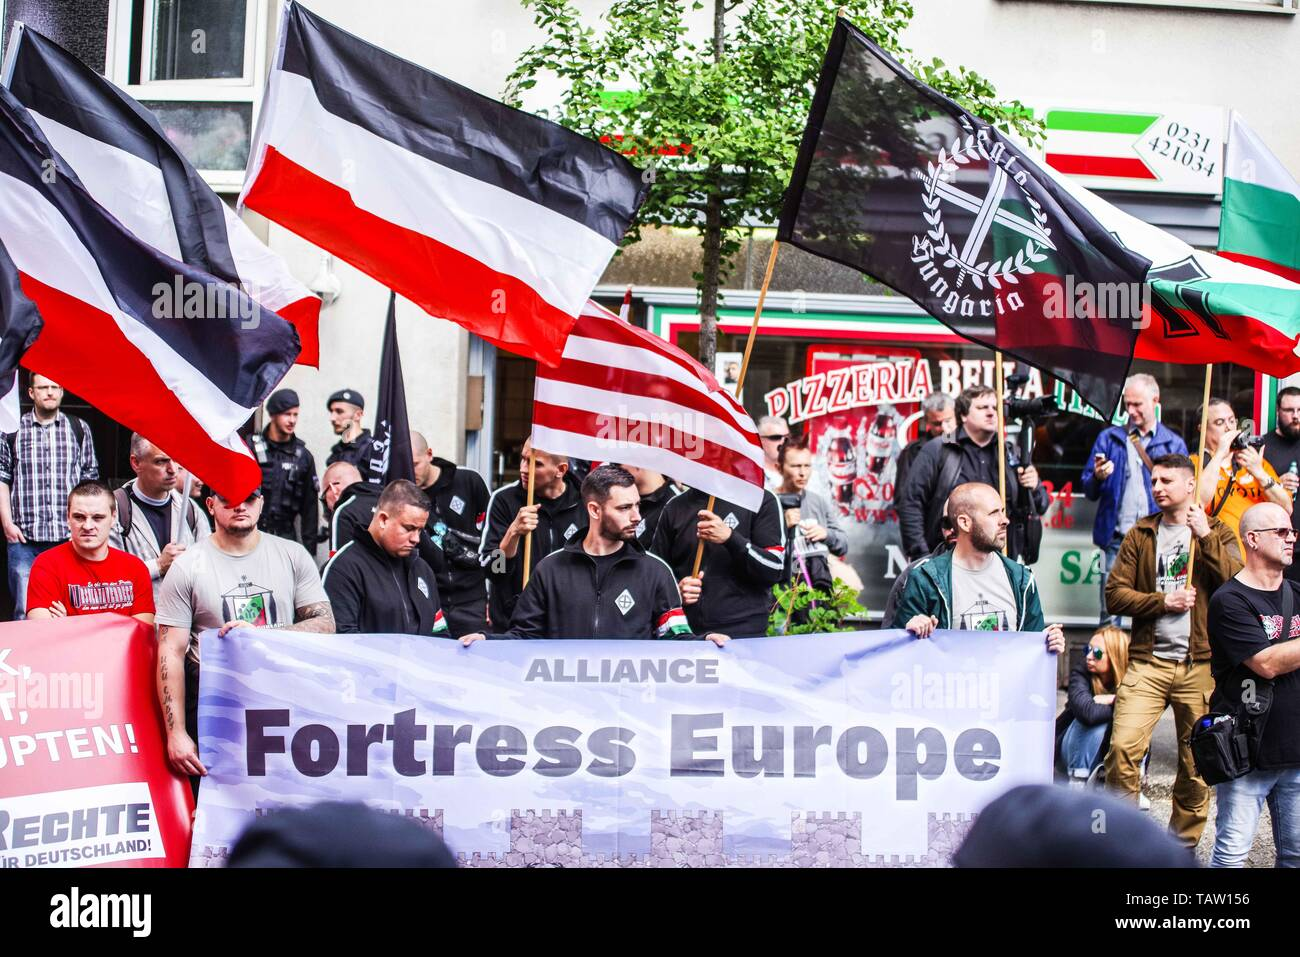 Dortmund, Nordrhein Westfalen, Germany. 25th May, 2019. The Alliance Fortress Europe consisting of German, French, Bulgarian, and Hungarian neonazis as seen in Dortmund, Germany. Prior to the European Elections, the neonazi party Die Rechte (The Right) organized a rally in the German city of Dortmund to promote their candidate, the incarcerated Holocaust denier Ursula Haverbeck. The demonstration and march were organized by prominent local political figure and neonazi activist Michael Brueck (Michael Brück) who enlisted the help of not only German neonazis, but also assistance from Russian, Stock Photo